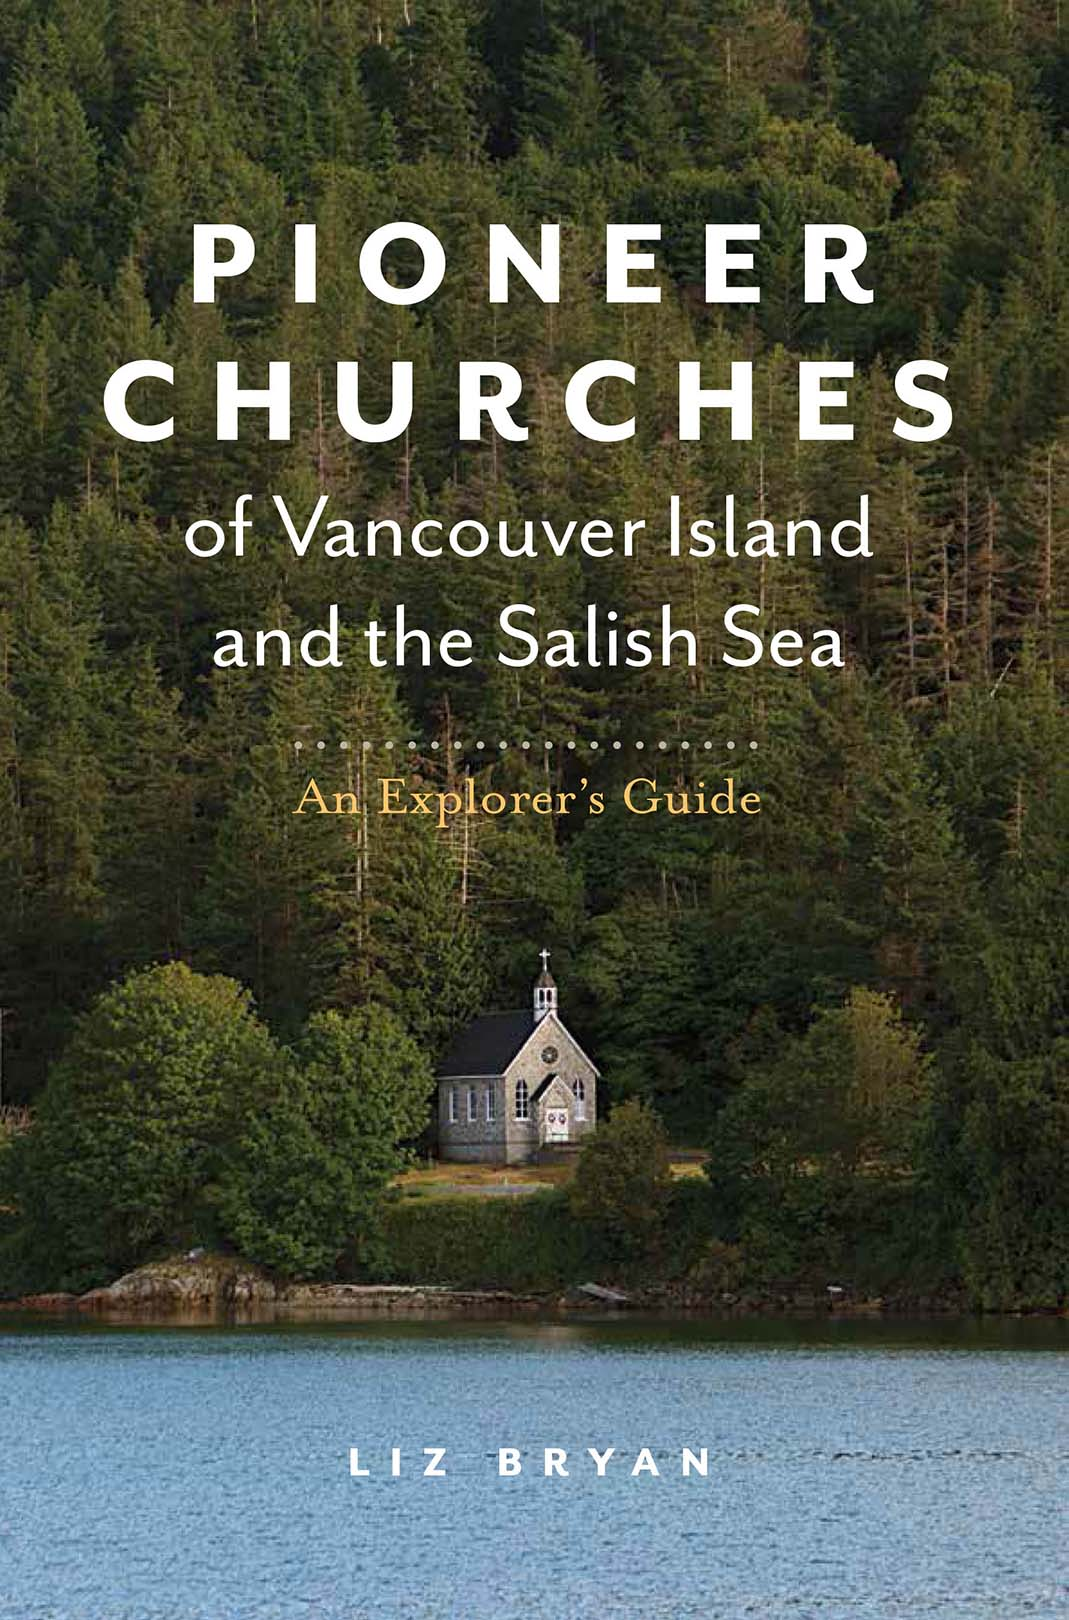 Pioneer Churches of Vancouver Island and the Salish Sea An Explorer's Guide book cover